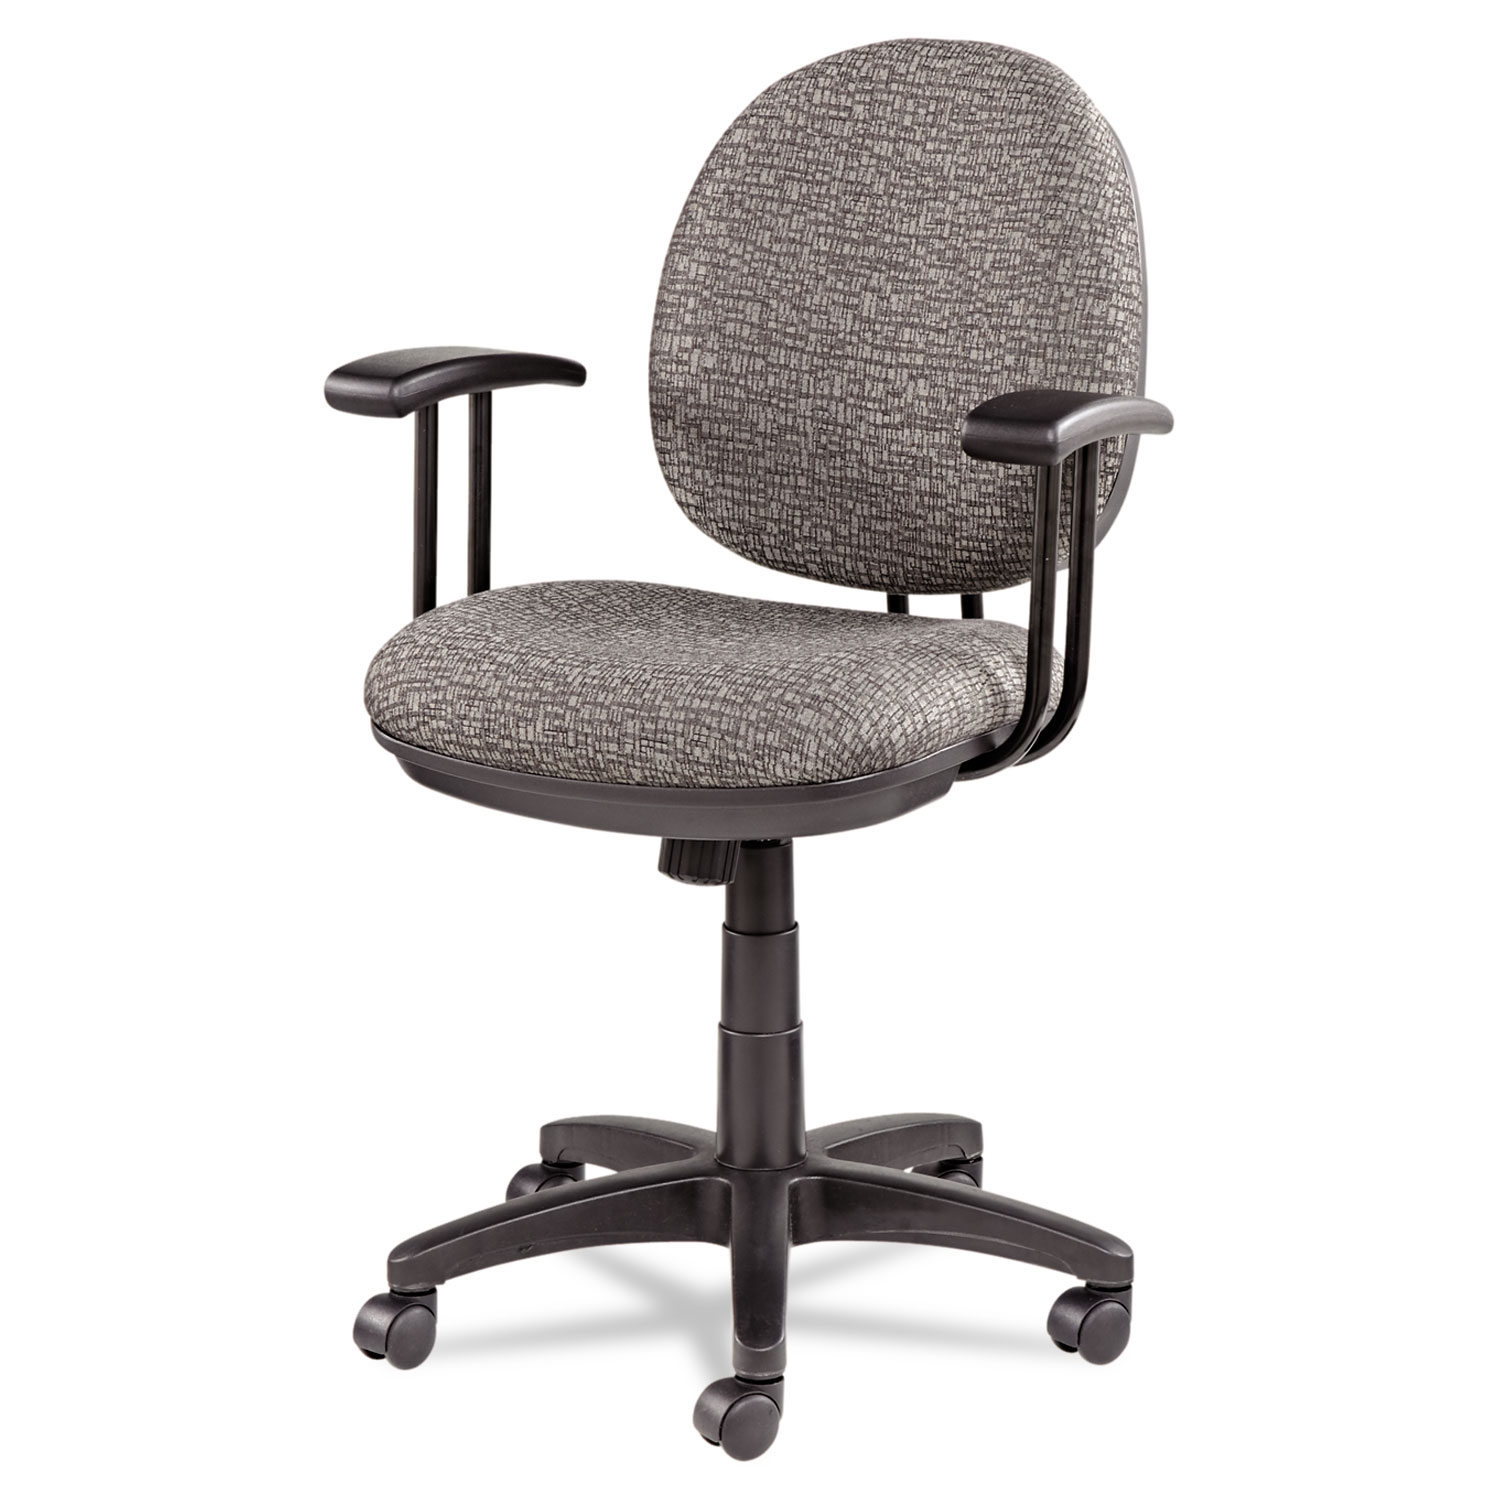 Alera Chair Alera Interval Swivel Tilt Task Chair By Alera Alein4841